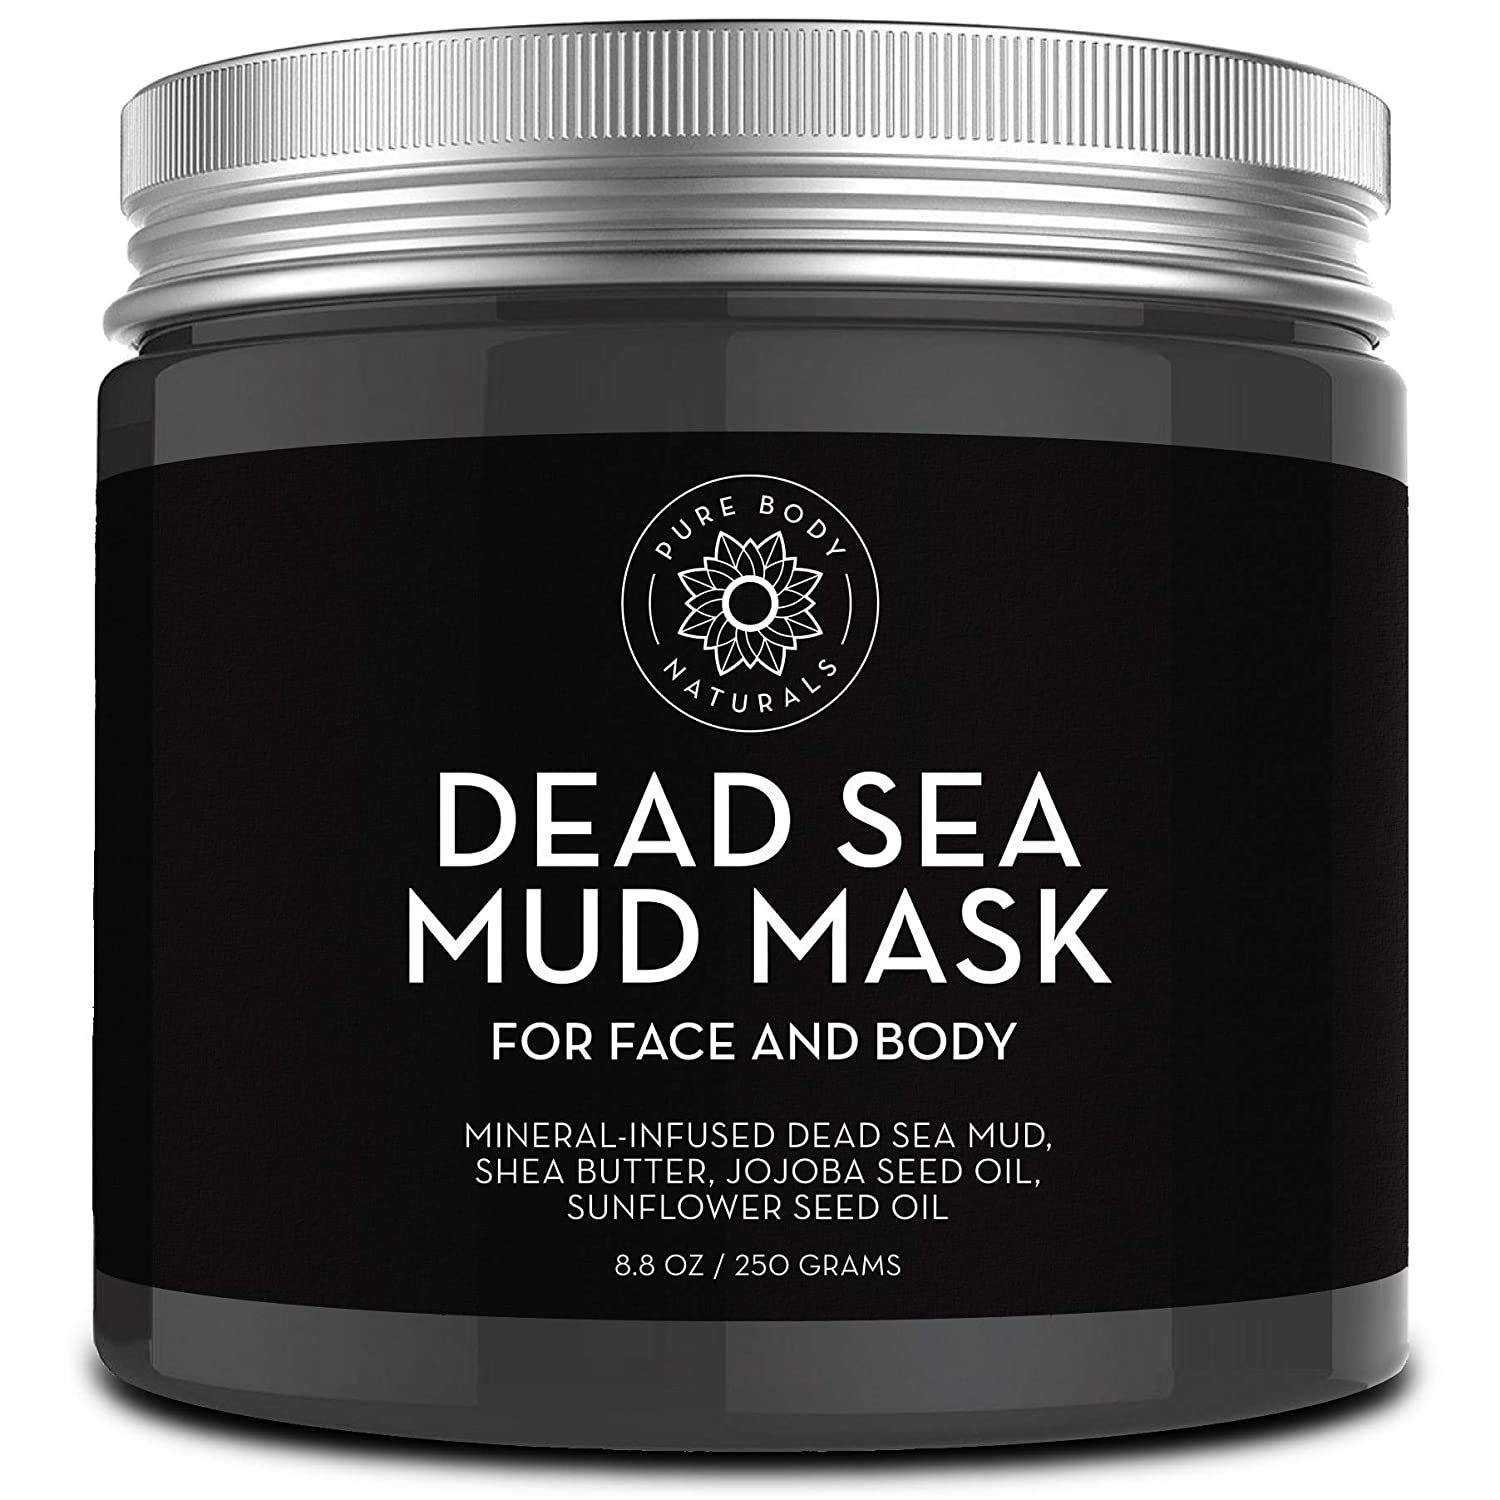 Pure Body Naturals Dead Sea Mud Mask for Face and Body, Purifying Face Mask for Acne, Blackheads, and Oily Skin, 8.8 Ounce : Beauty